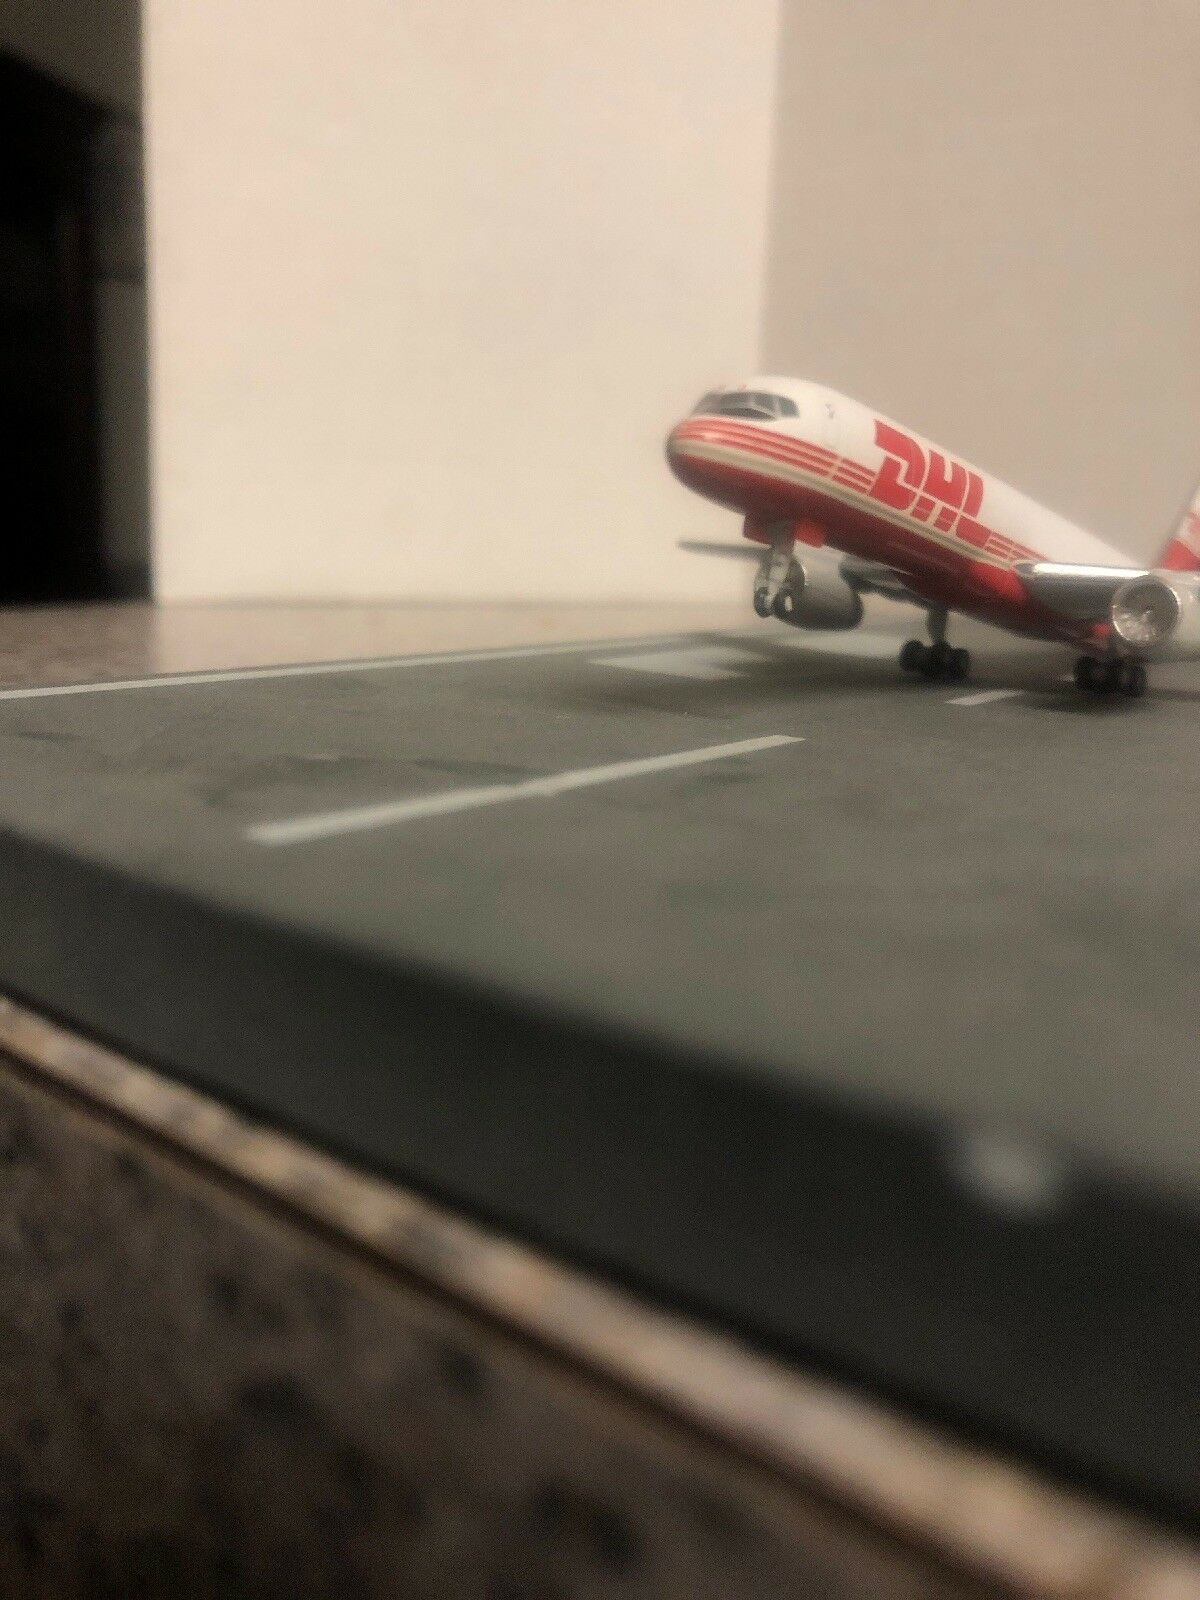 GJ 400 scale diecast model DHL Air Boeing Boeing Boeing 757-23APF Commercial Airliner OO-DLJ 14c5fd